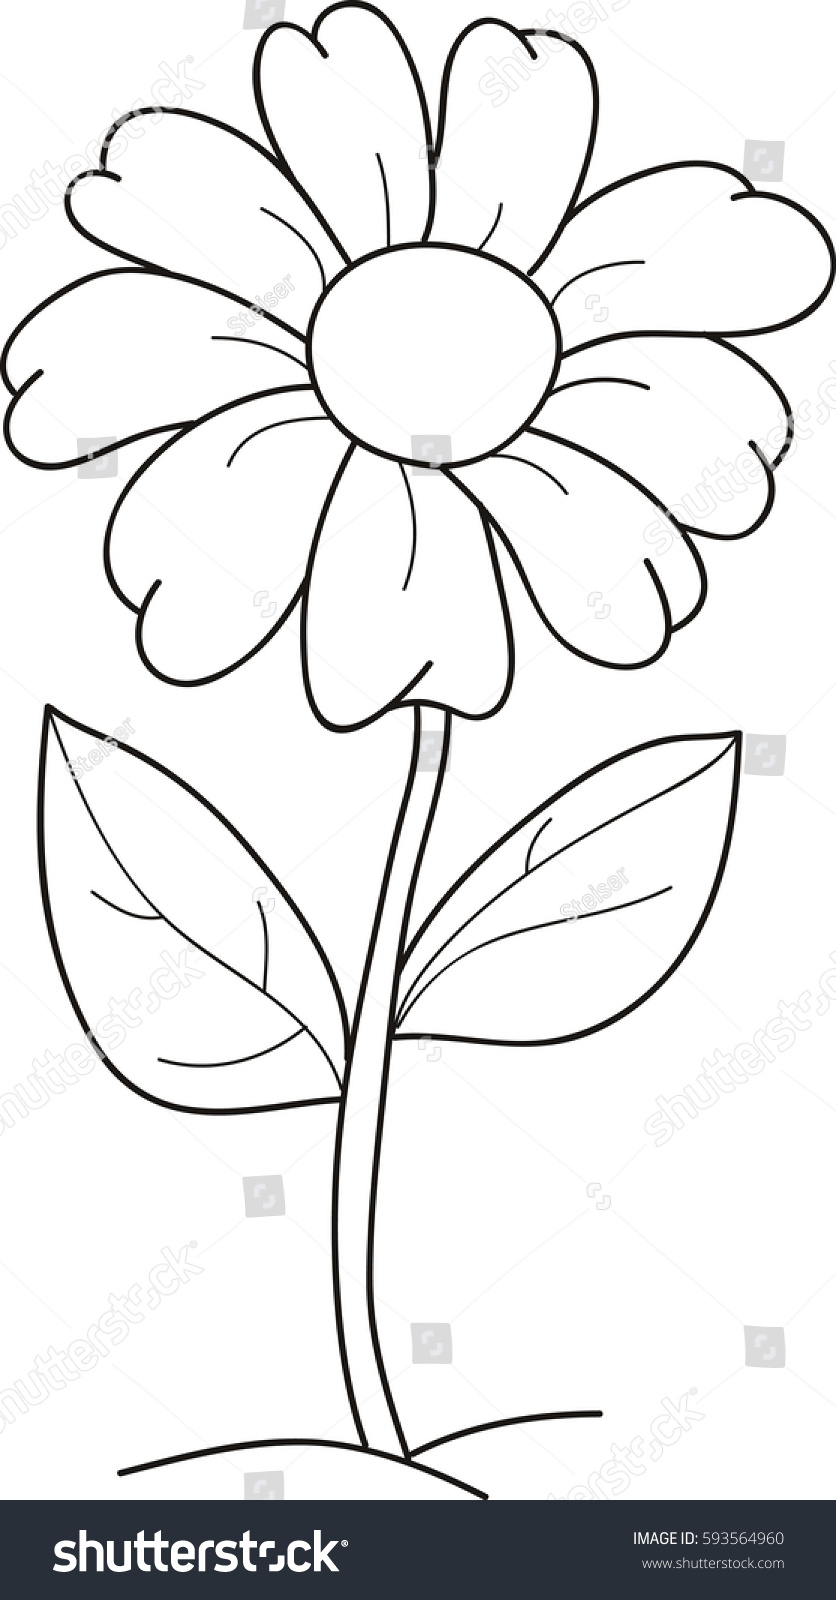 Cartoon Vector Illustration Flower Coloring Book Stock Vector Royalty Free 5935649 Printable Flower Coloring Pages Easy Flower Drawings Flower Coloring Pages